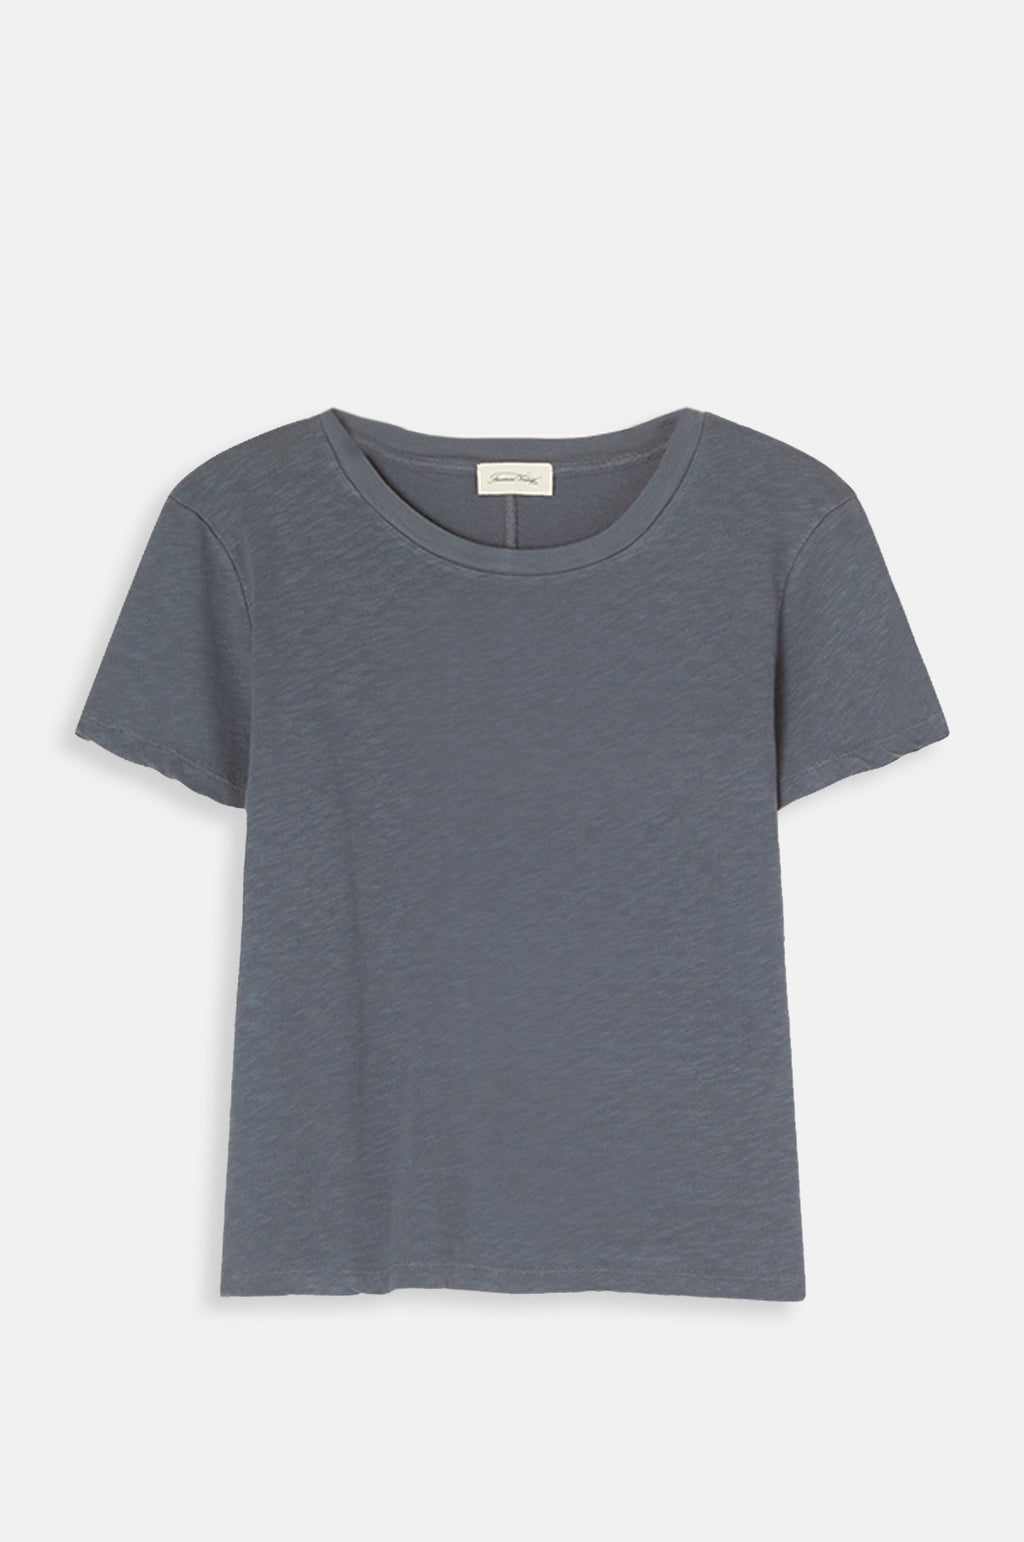 Sonoma Short Sleeve T Shirt in Vintage Misty